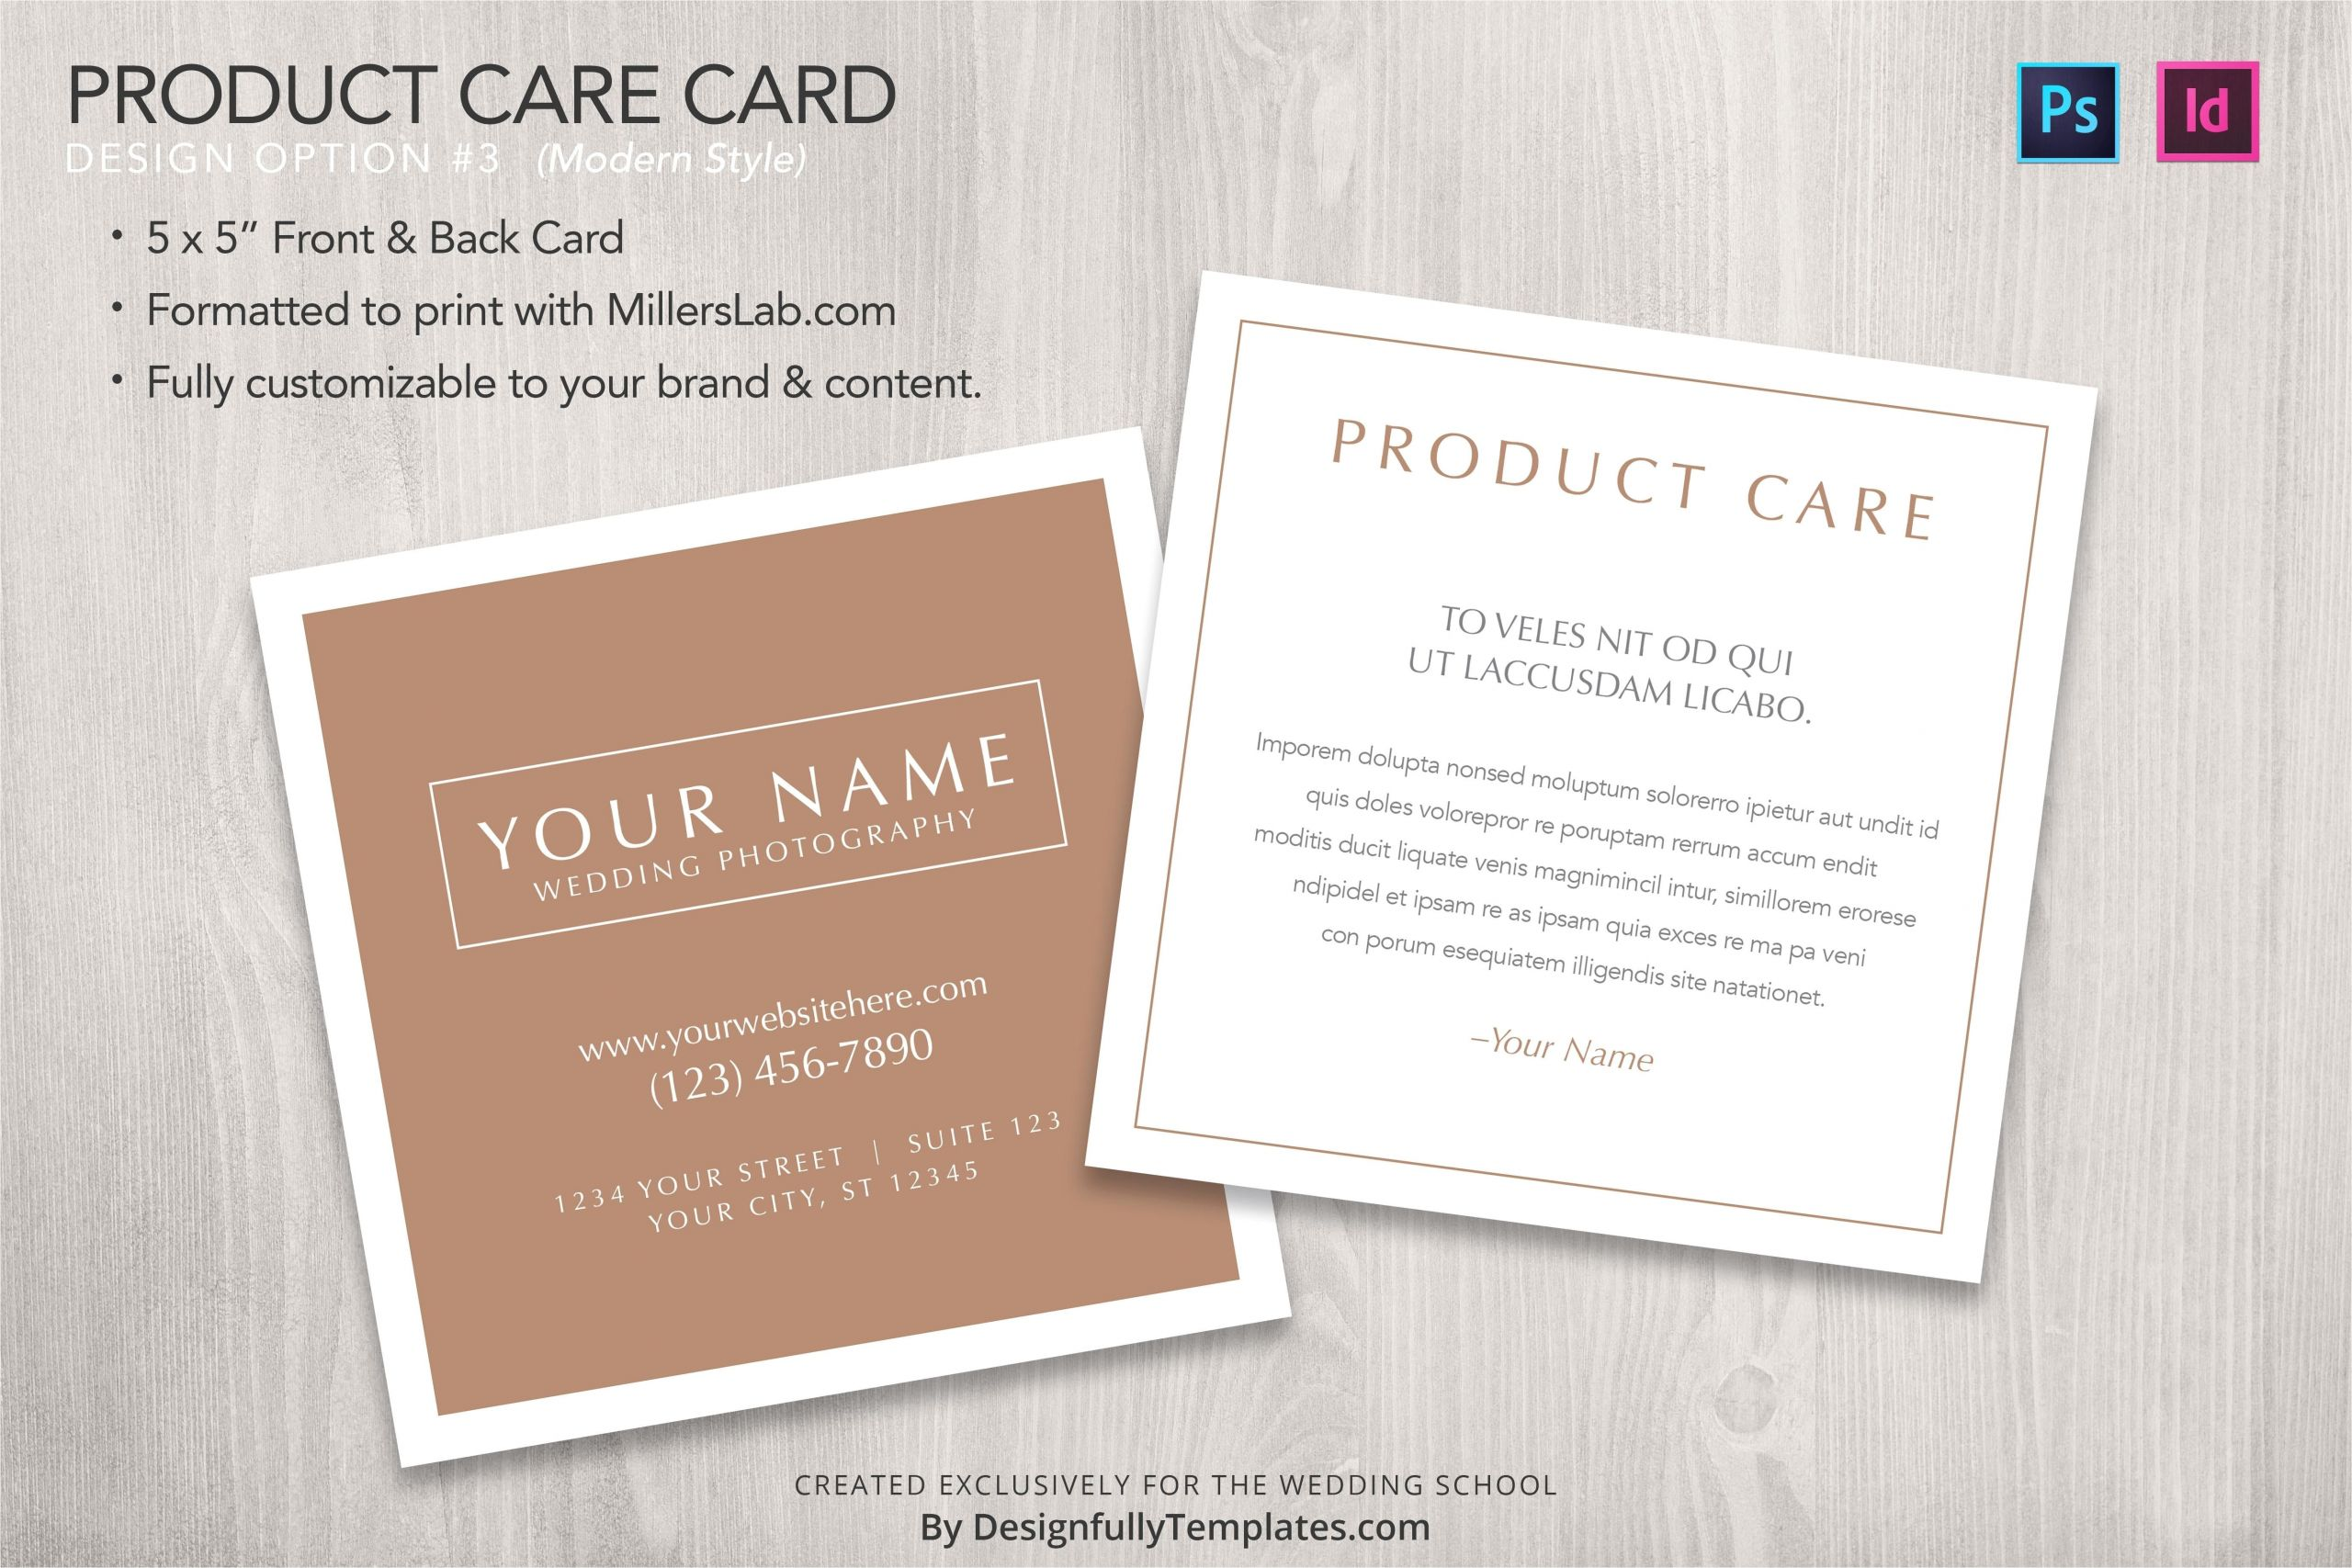 Create Eid Card Your Own Download Valid Business Card Preview Template Can Save at